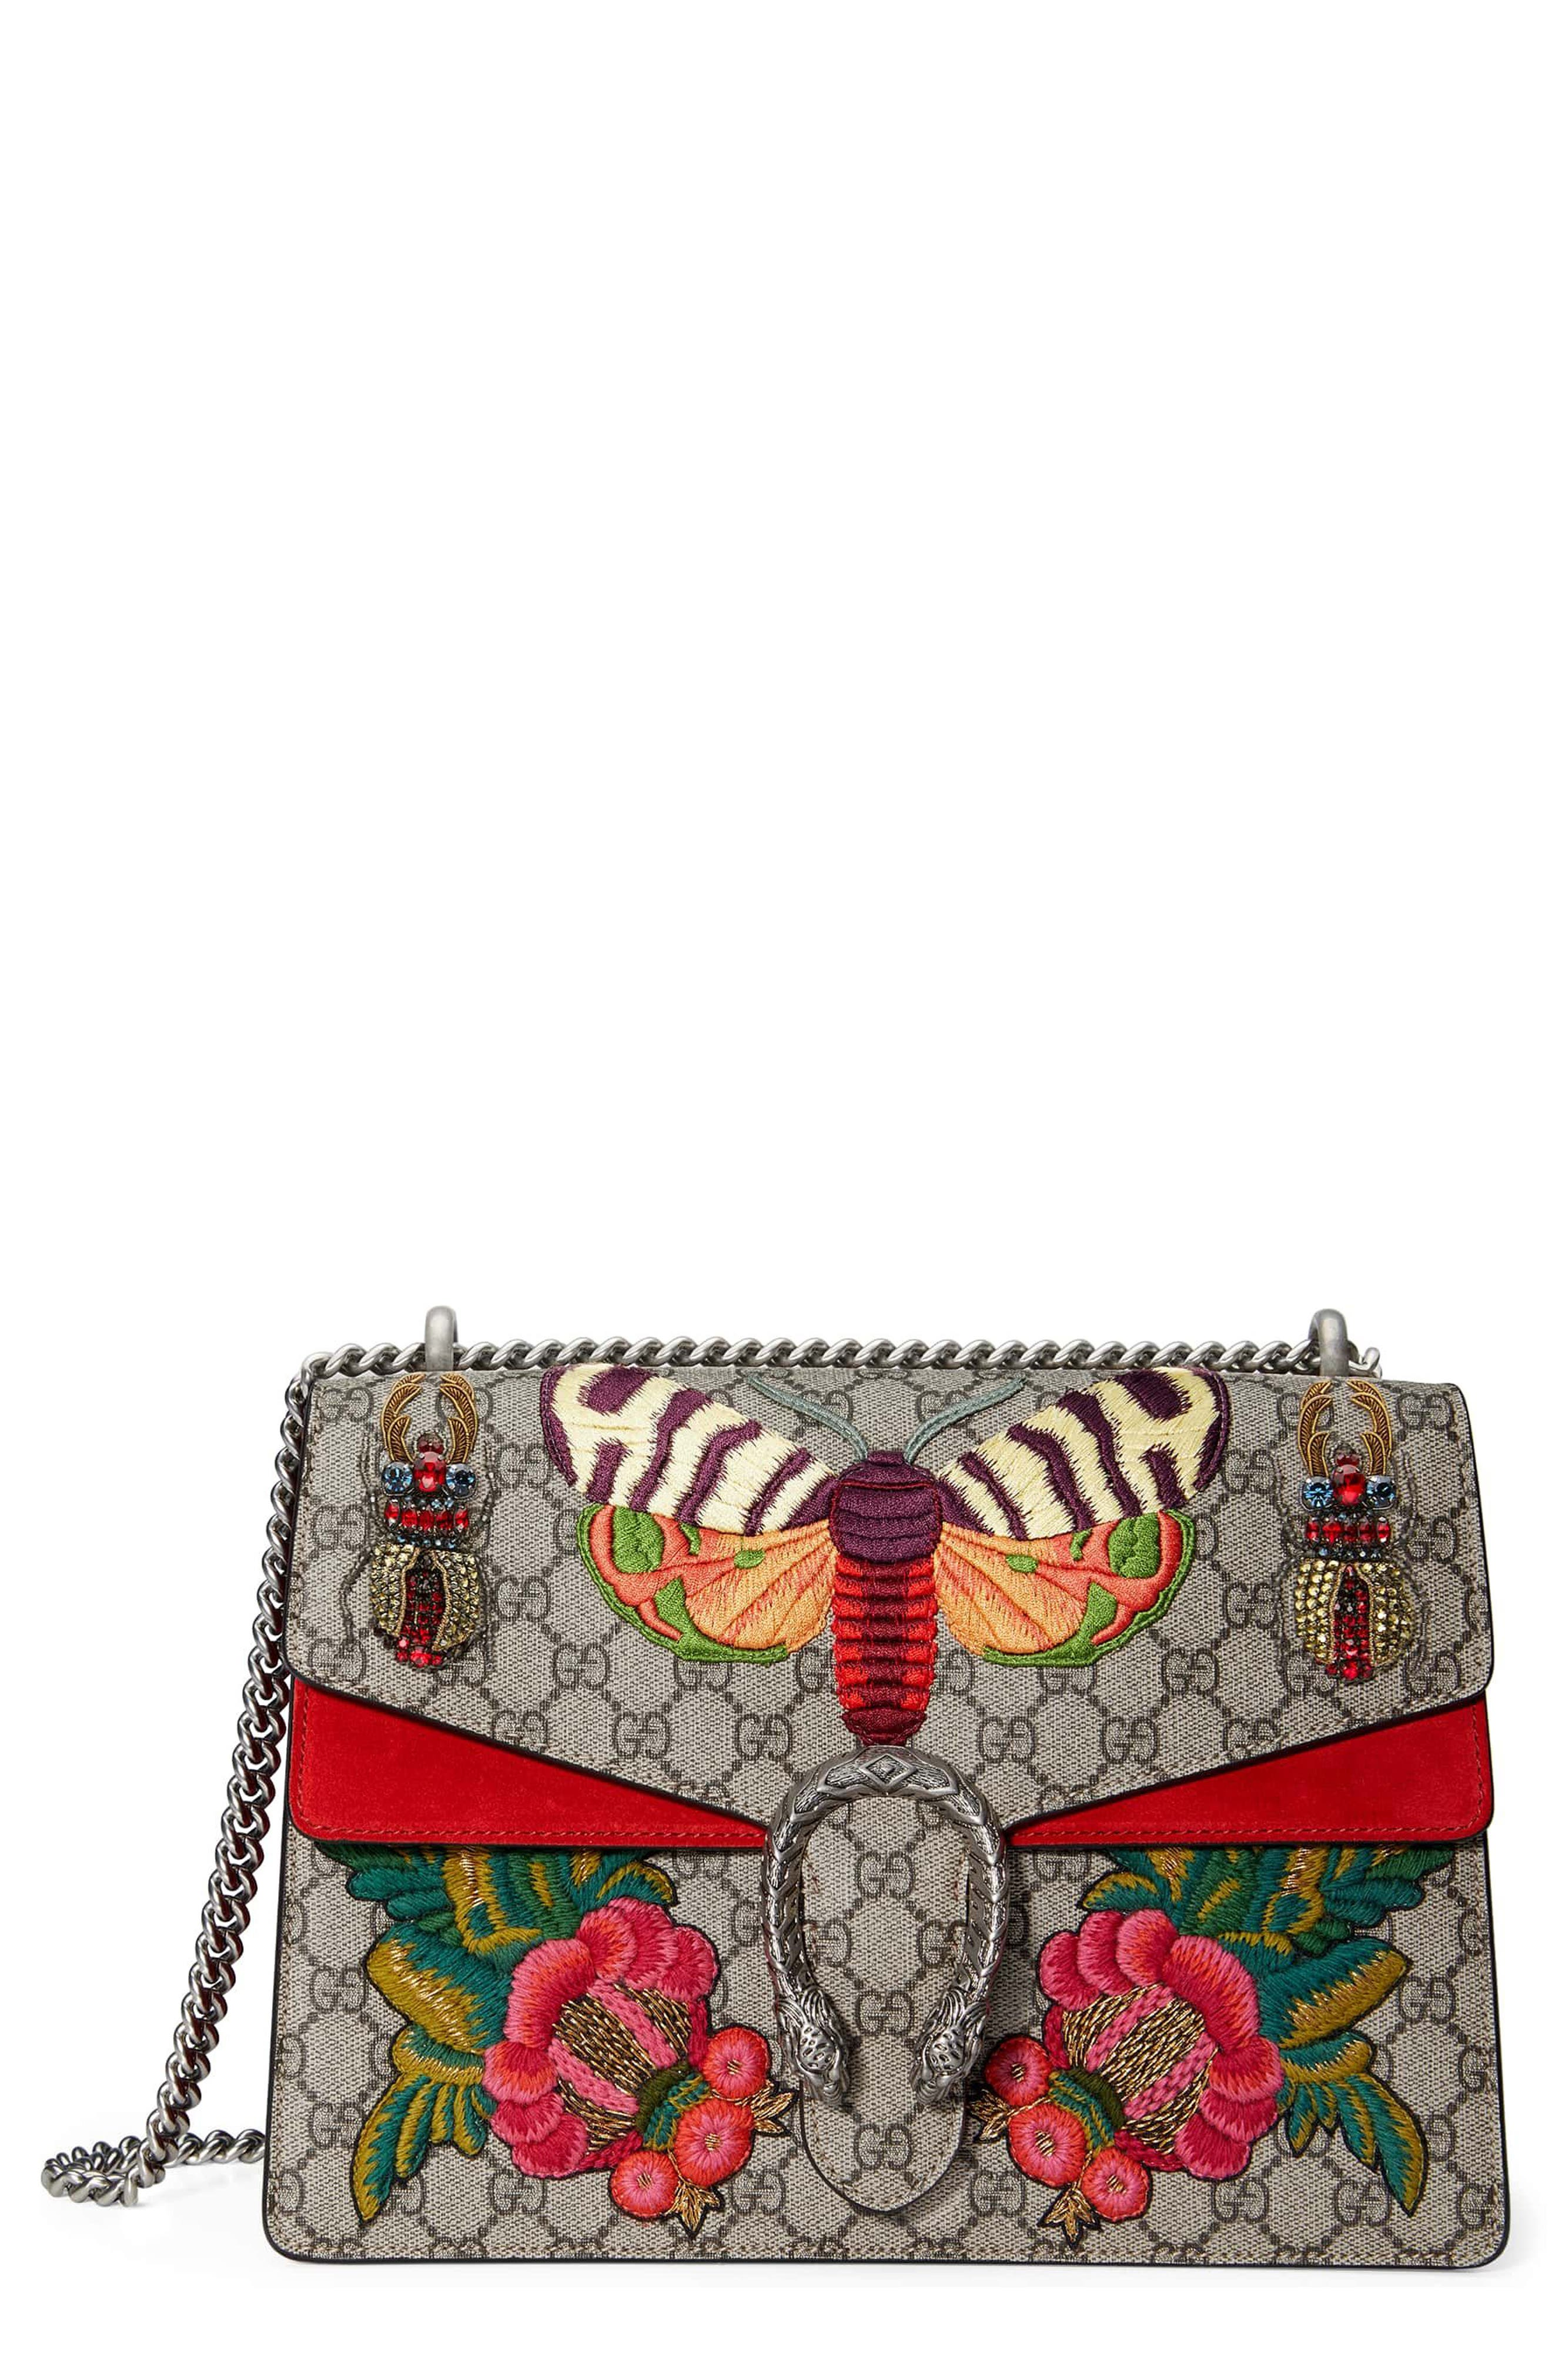 Medium Dionysus Embroidered GG Supreme Canvas & Suede Shoulder Bag,                             Main thumbnail 1, color,                             280